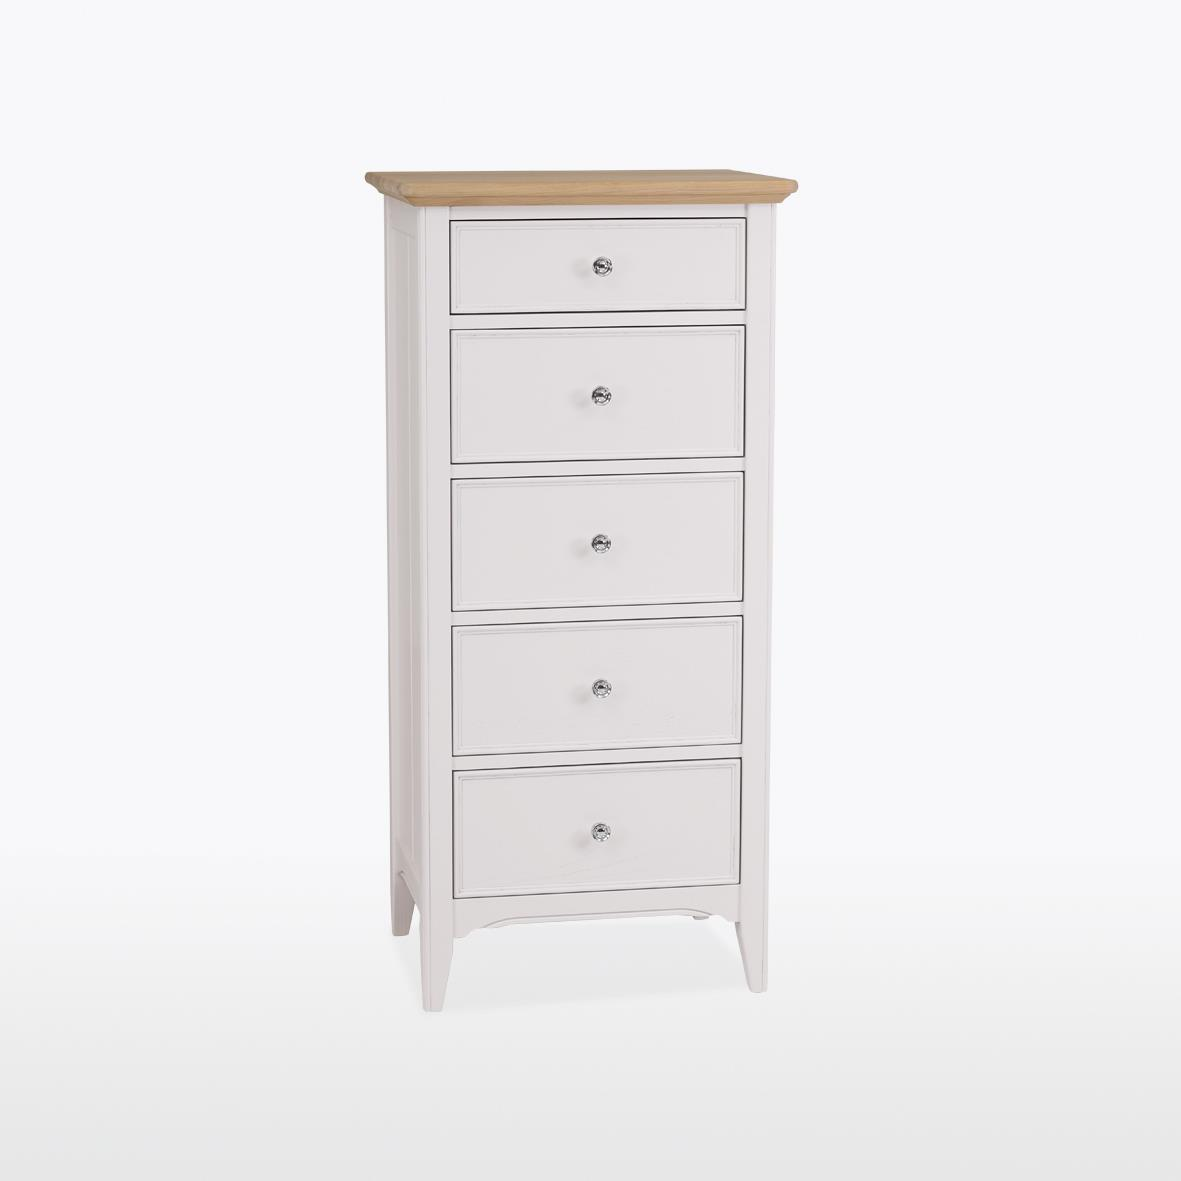 NEW ENGLAND - 5 Drawer Narrow Chest - Wellington NEL802